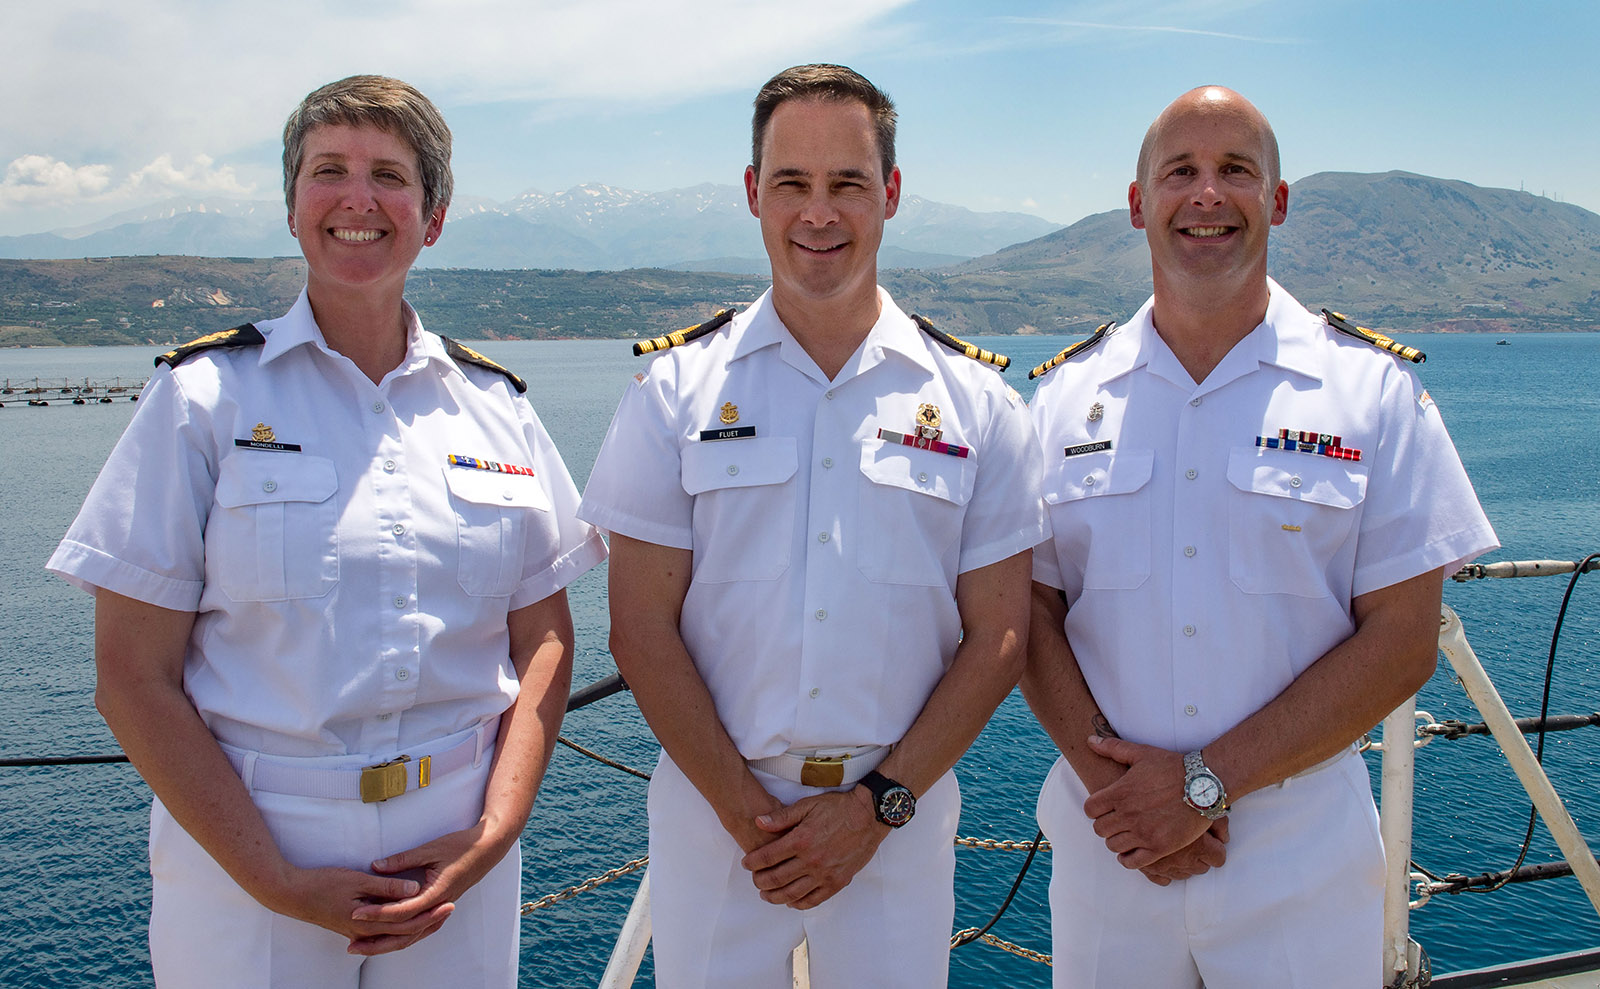 HMCS Toronto's Command Team poses on the foc'sle of the ship while in Souda Bay, Greece on June 13, 2019 during Operation REASSURANCE, ROTO 10.  Left to right:  Chief Petty Officer 1st Class Alena Mondelli (Coxswain), Commander Martin Fluet (Commanding Officer), Lieutenant-Commander Matthew Woodburn (Executive Officer).